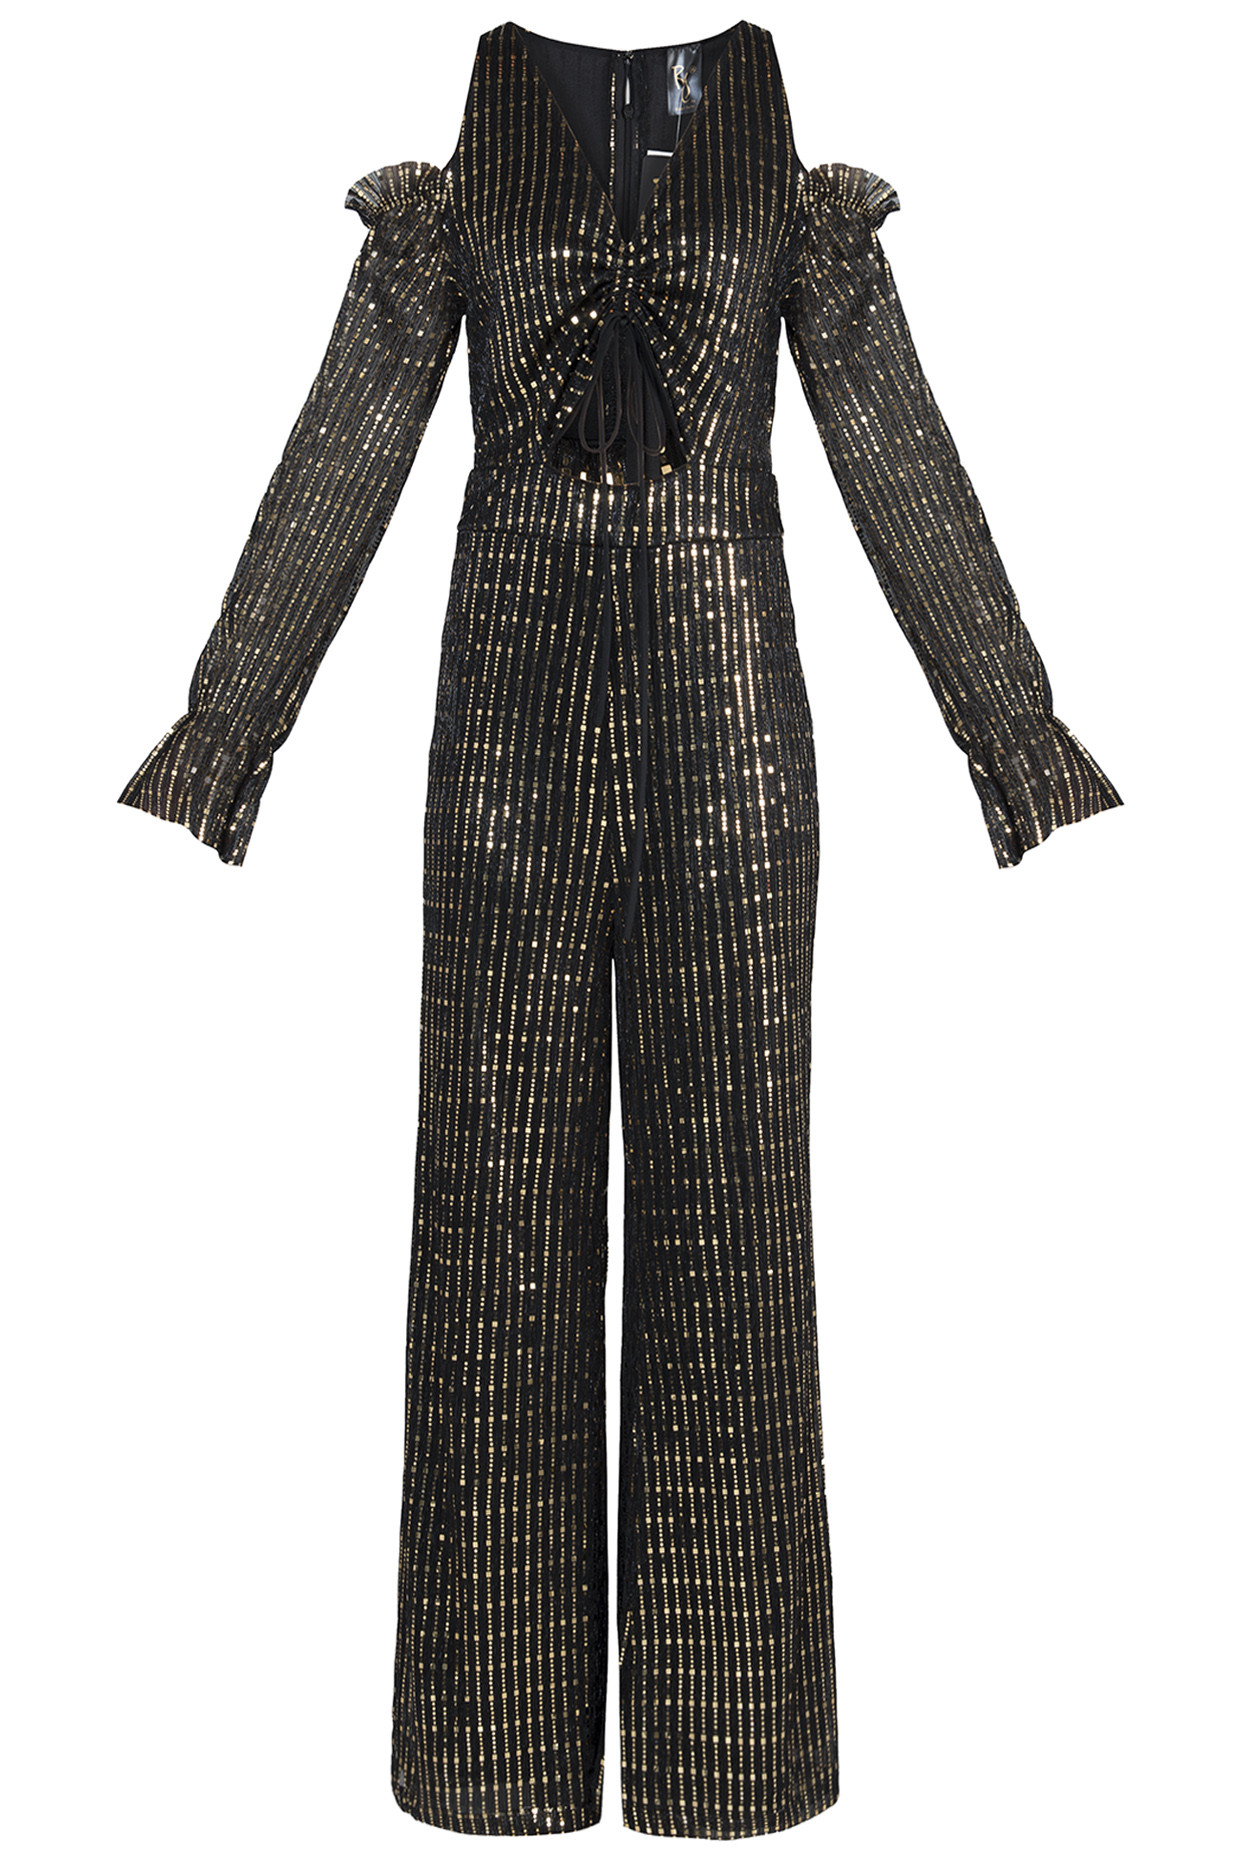 Black Metallic Jumpsuit by RS by Rippi Sethi